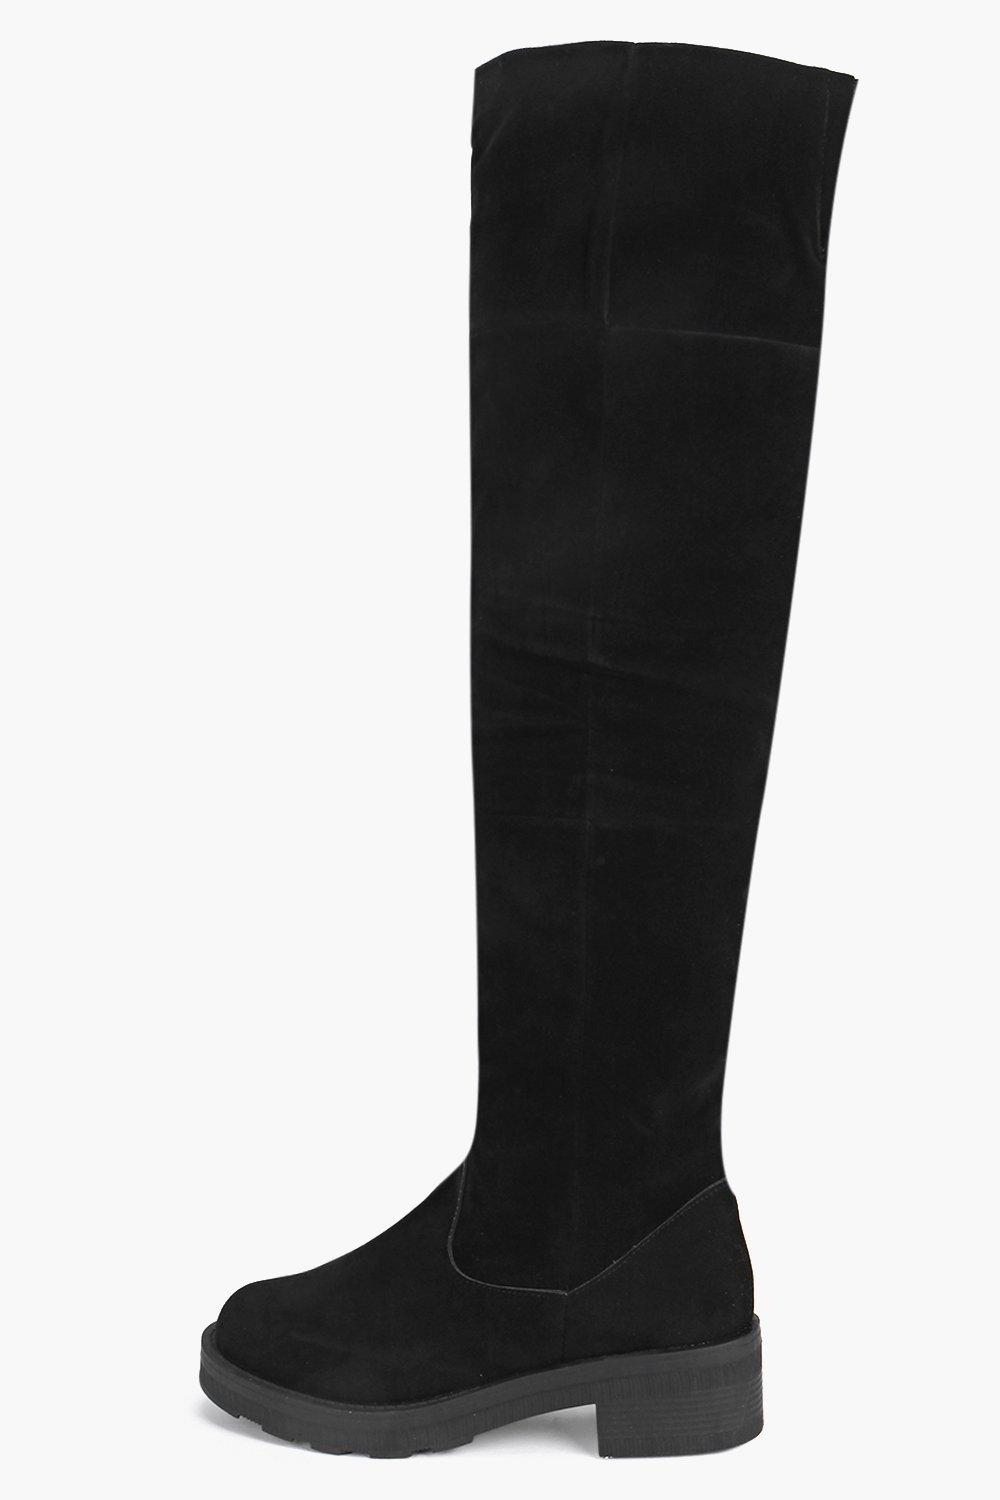 Demi Cleated Sole Over The Knee Boot